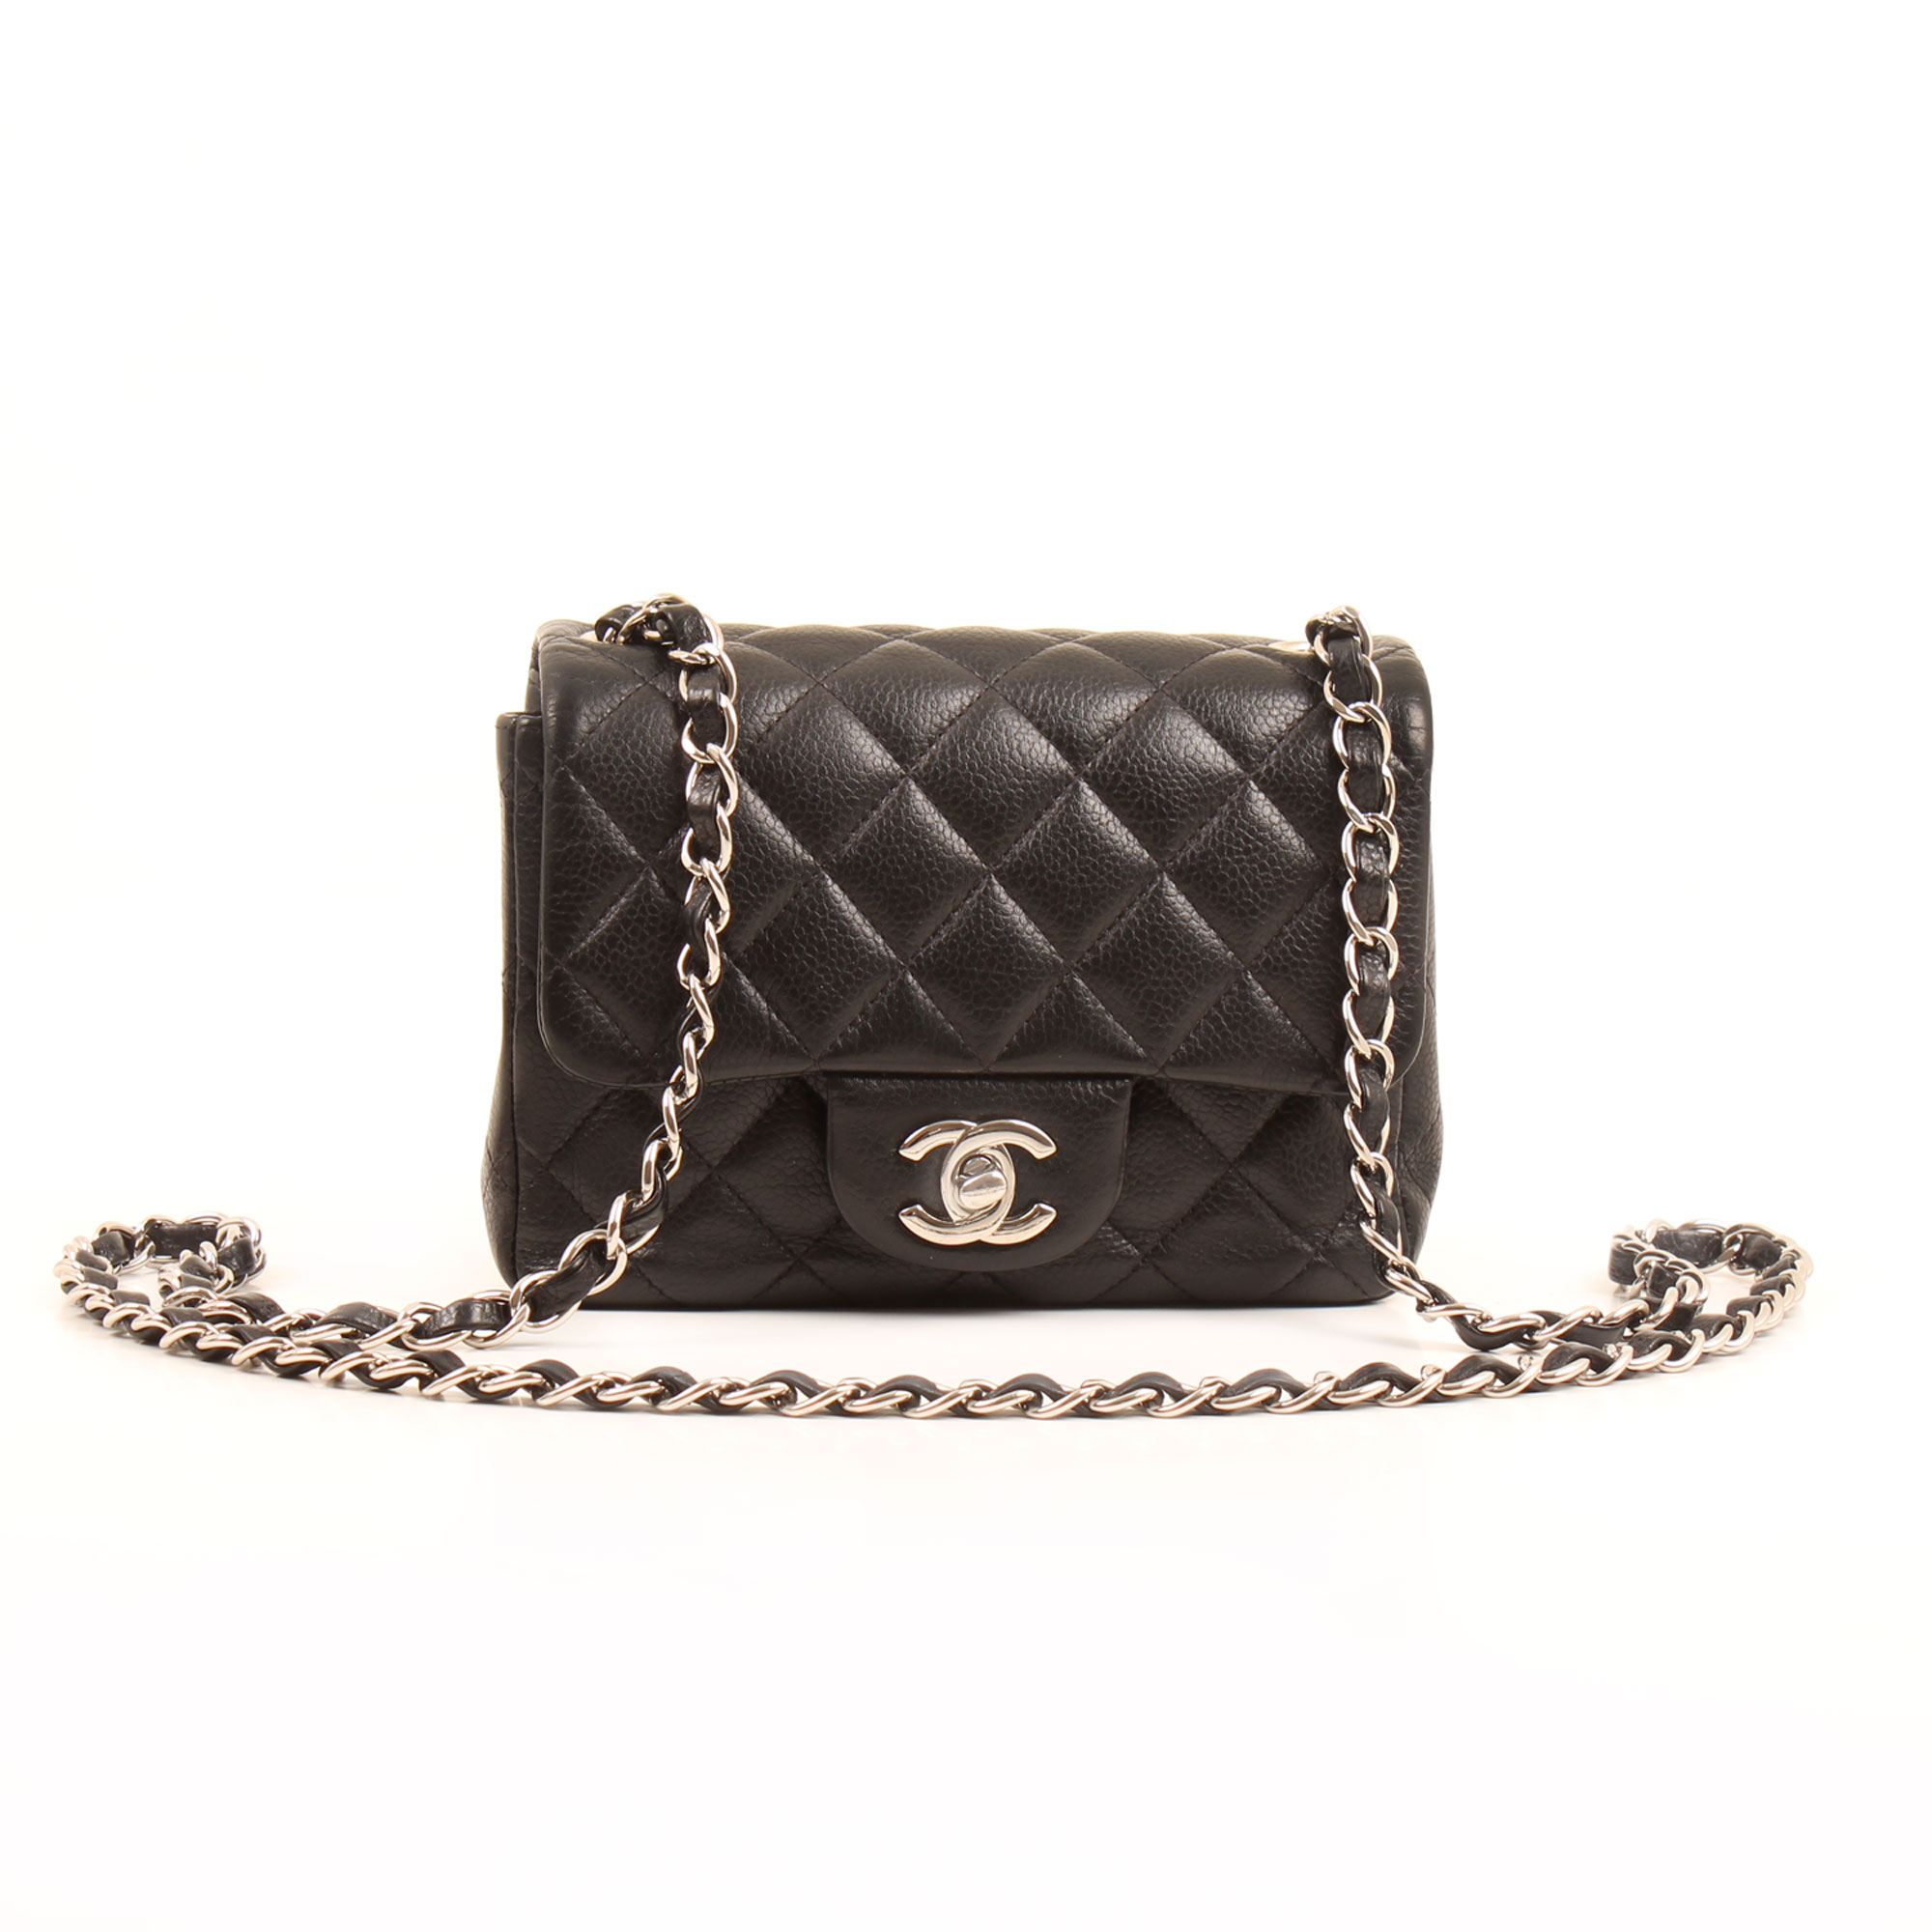 Front image of chanel mini timeless black caviar